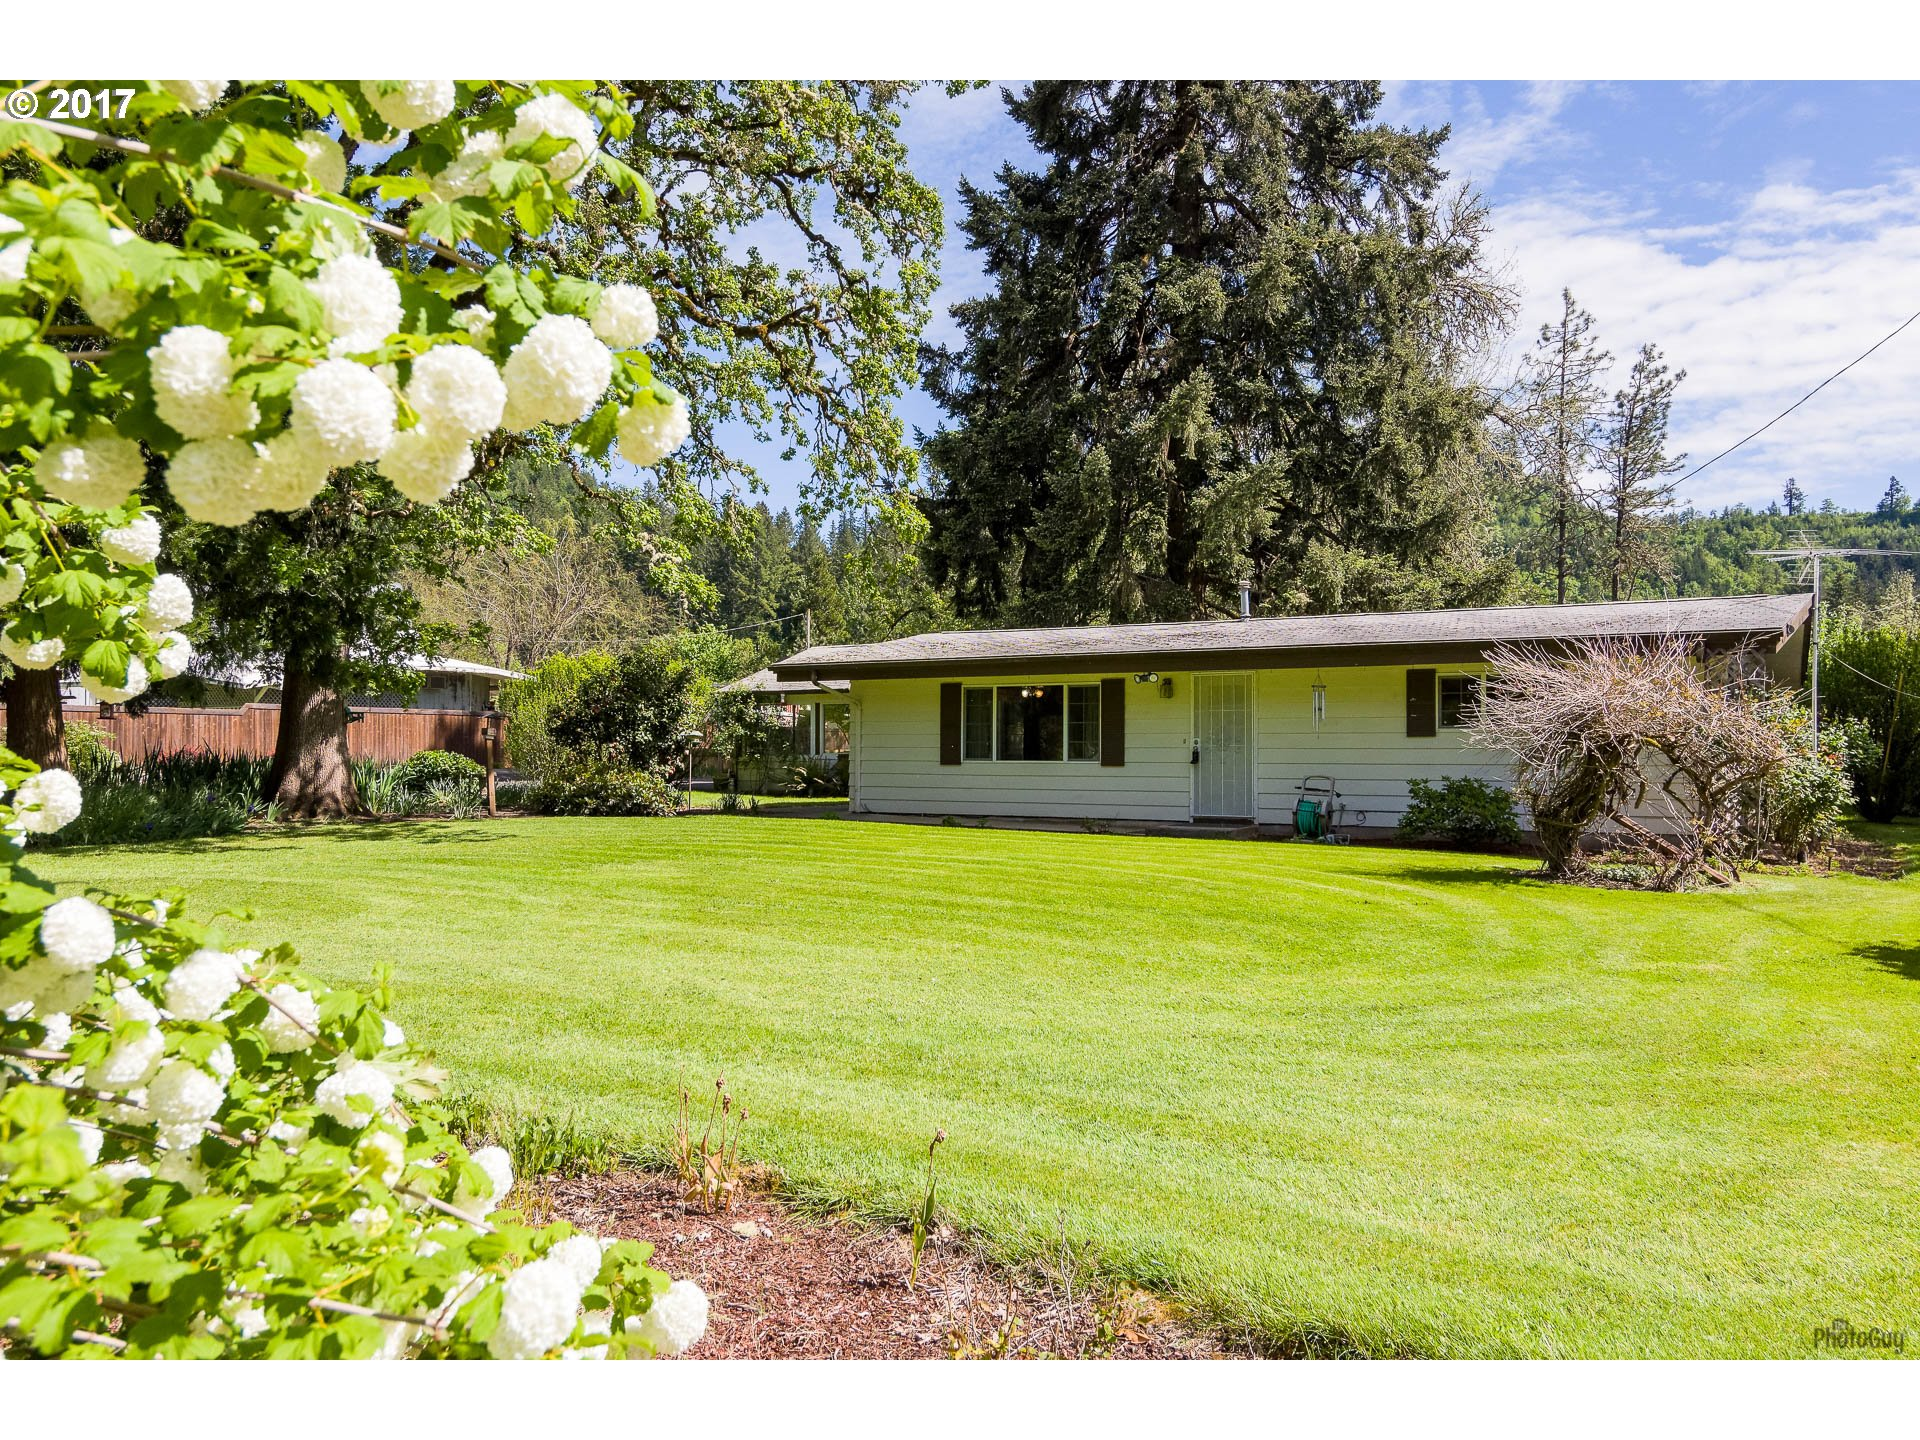 37440 HILLS CREEK RD, Springfield, OR 97478